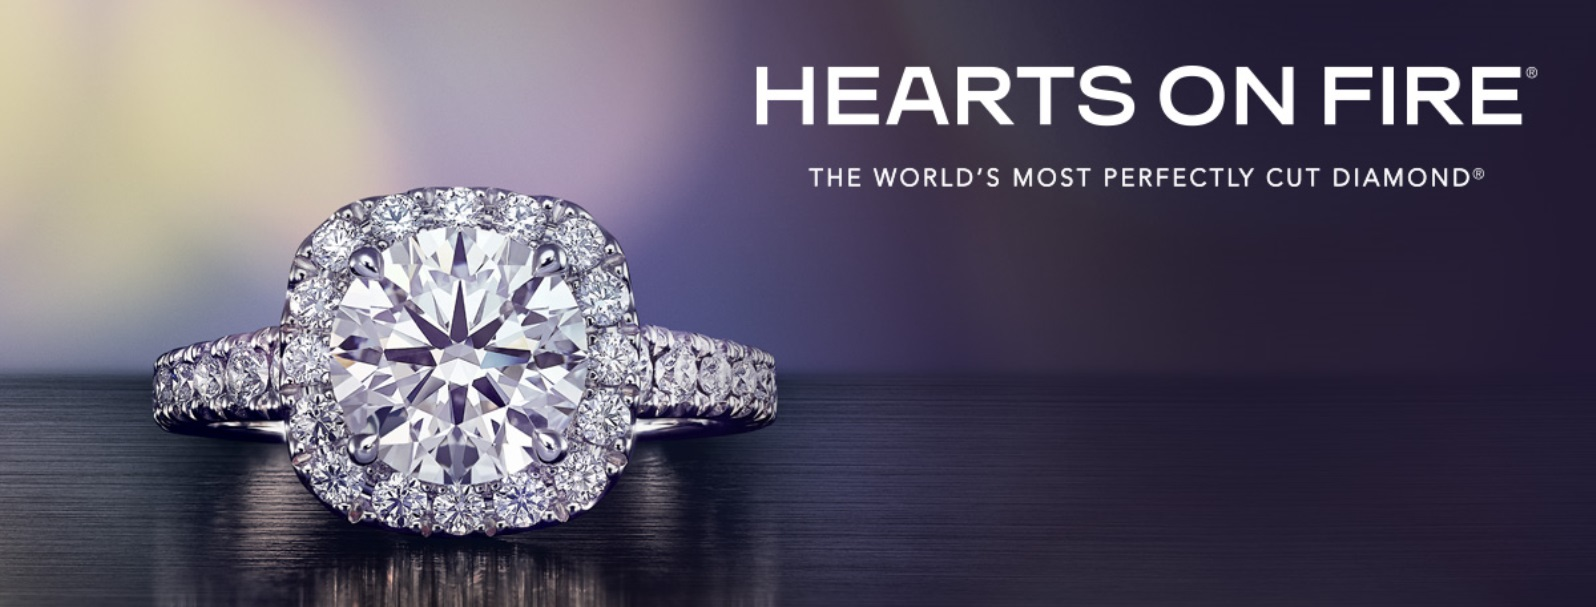 hearts on fire acclaim diamond engagement ring in cleveland ohio